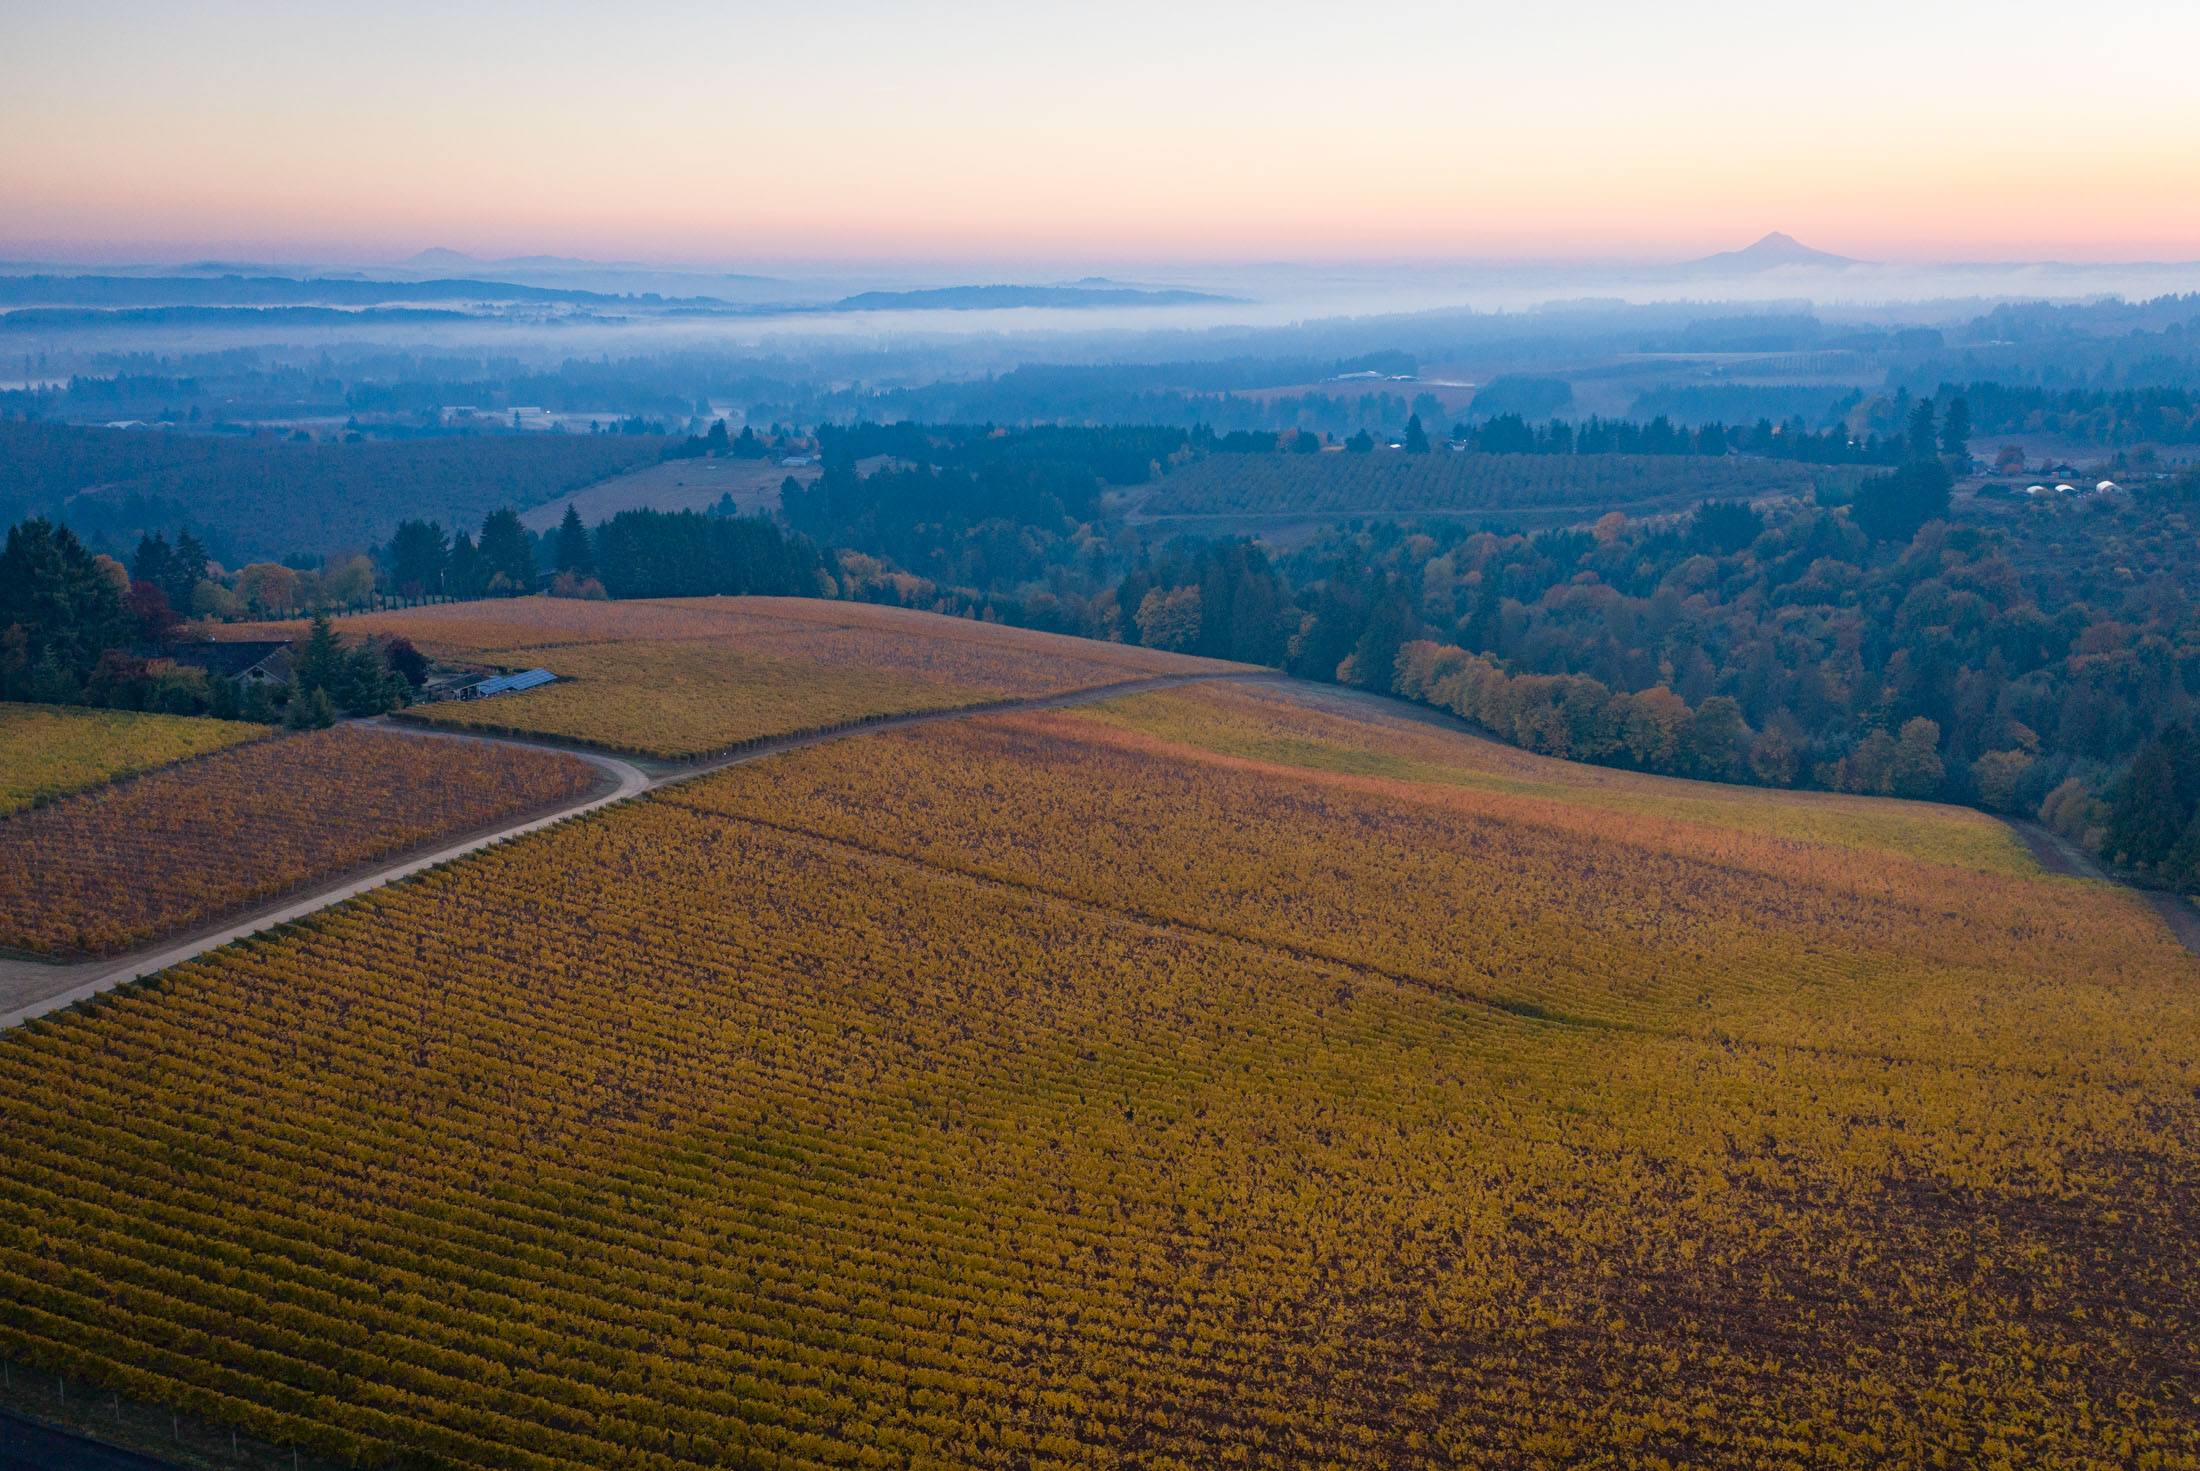 relates to Posh French Winemakers Pounce on Big American Vineyard Selloff